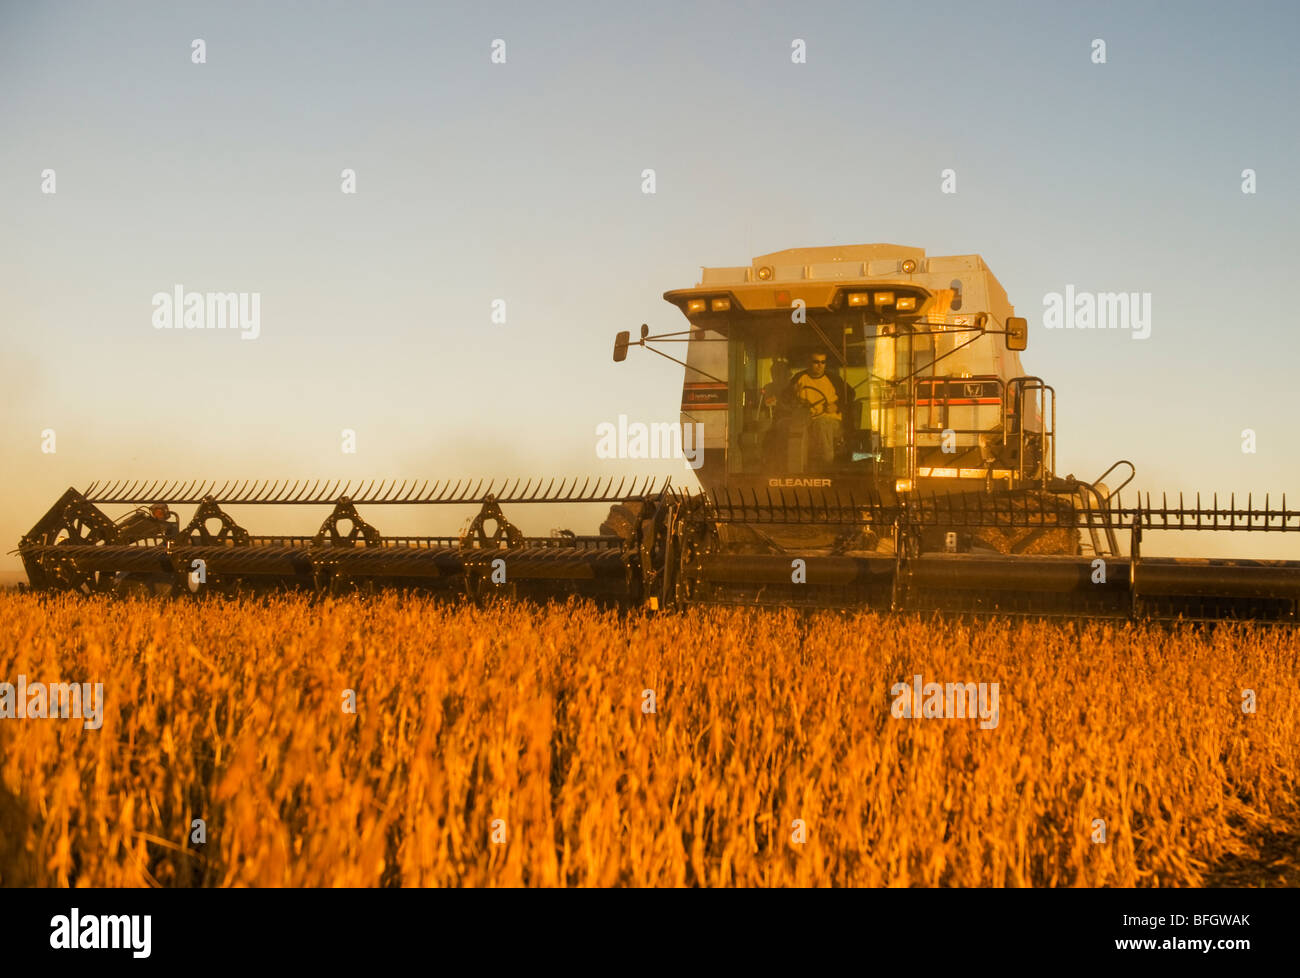 Combine harvester on soybean field in the early evening. Near Lorette, Manitoba, Canada - Stock Image